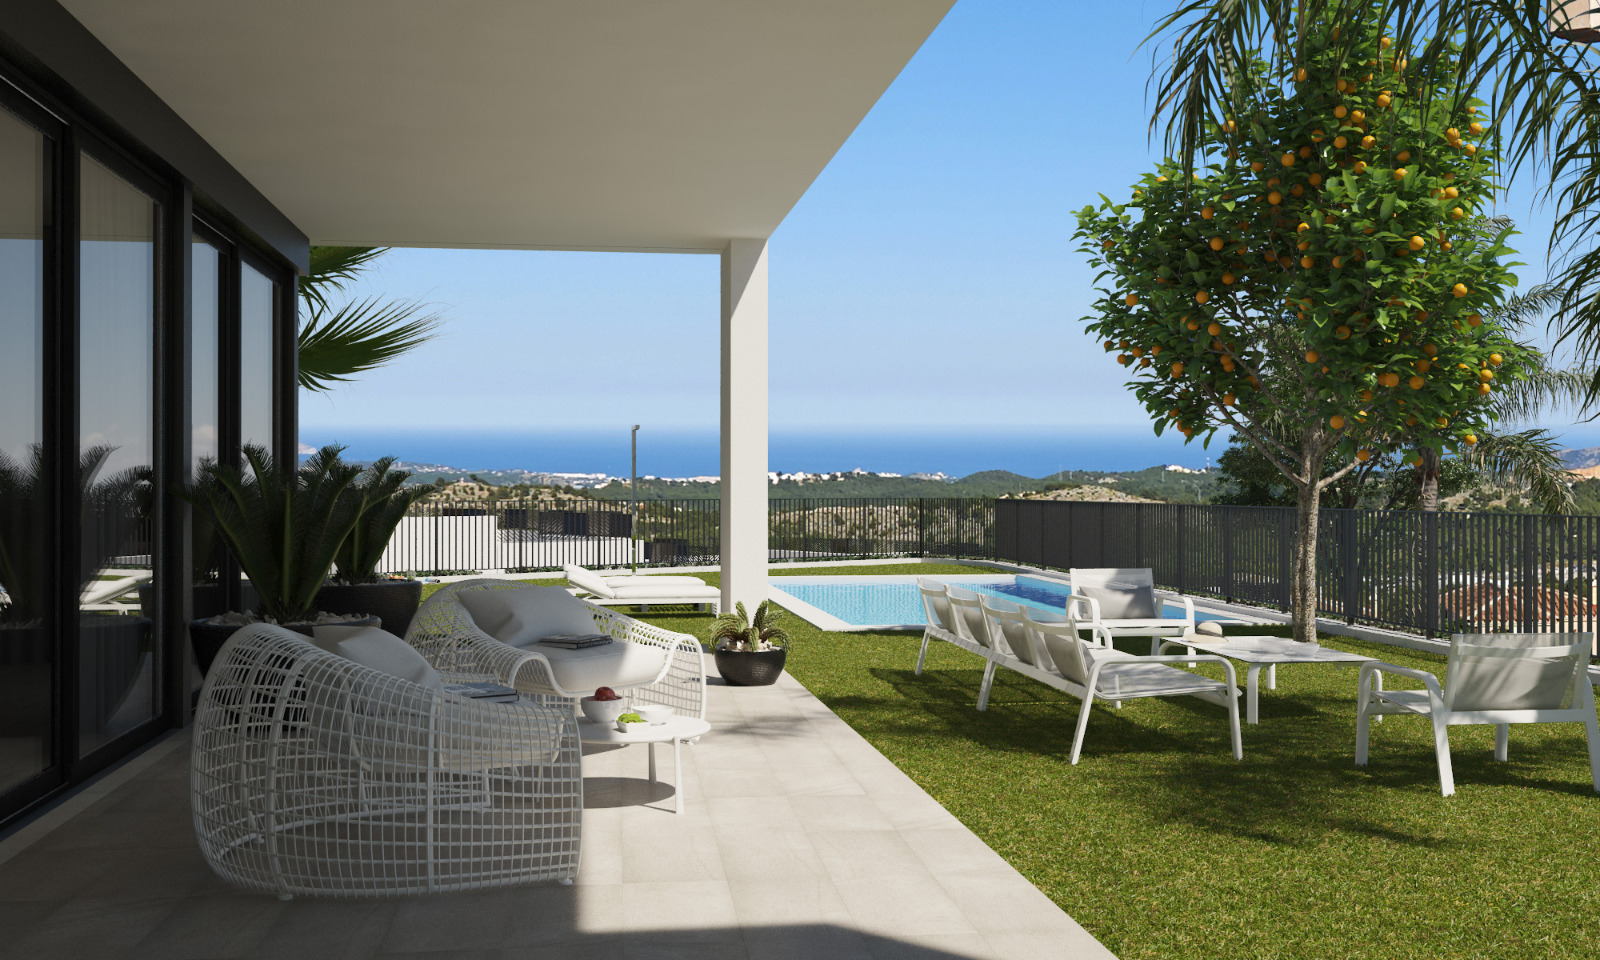 New modern detached villa with stunning views at unbeatable prices.